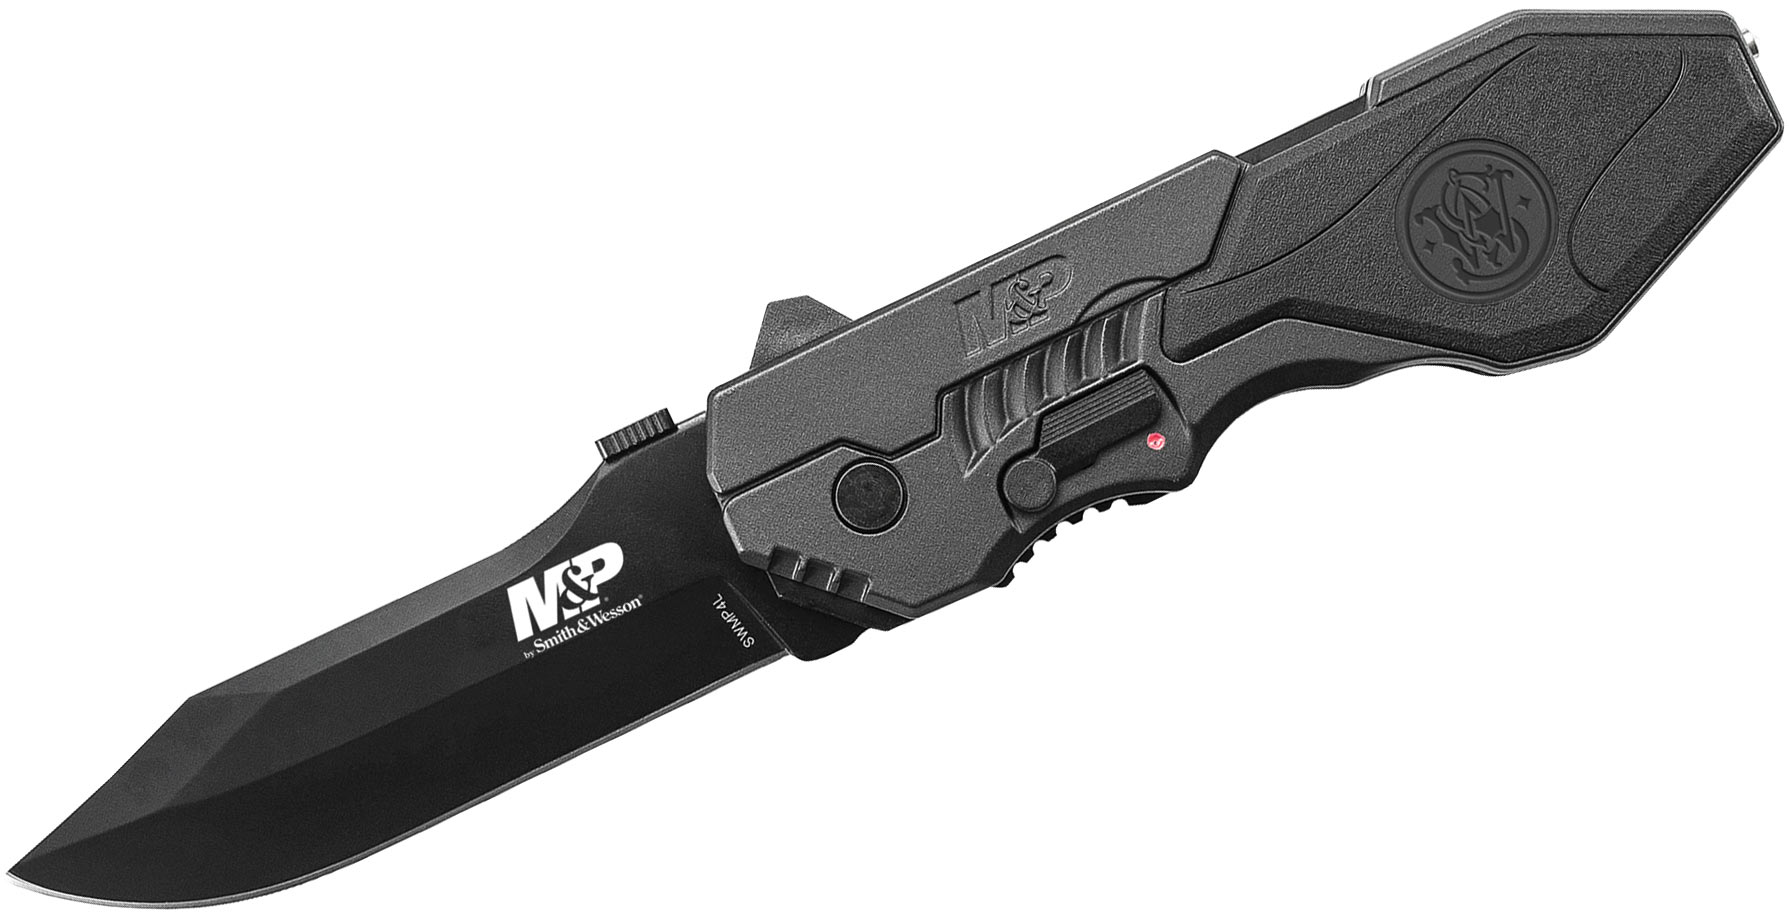 Smith & Wesson SWMP4L M&P MAGIC Assisted Flipper 3.6 inch Black Plain Blade, Black Aluminum Handles with Rubber Inlay